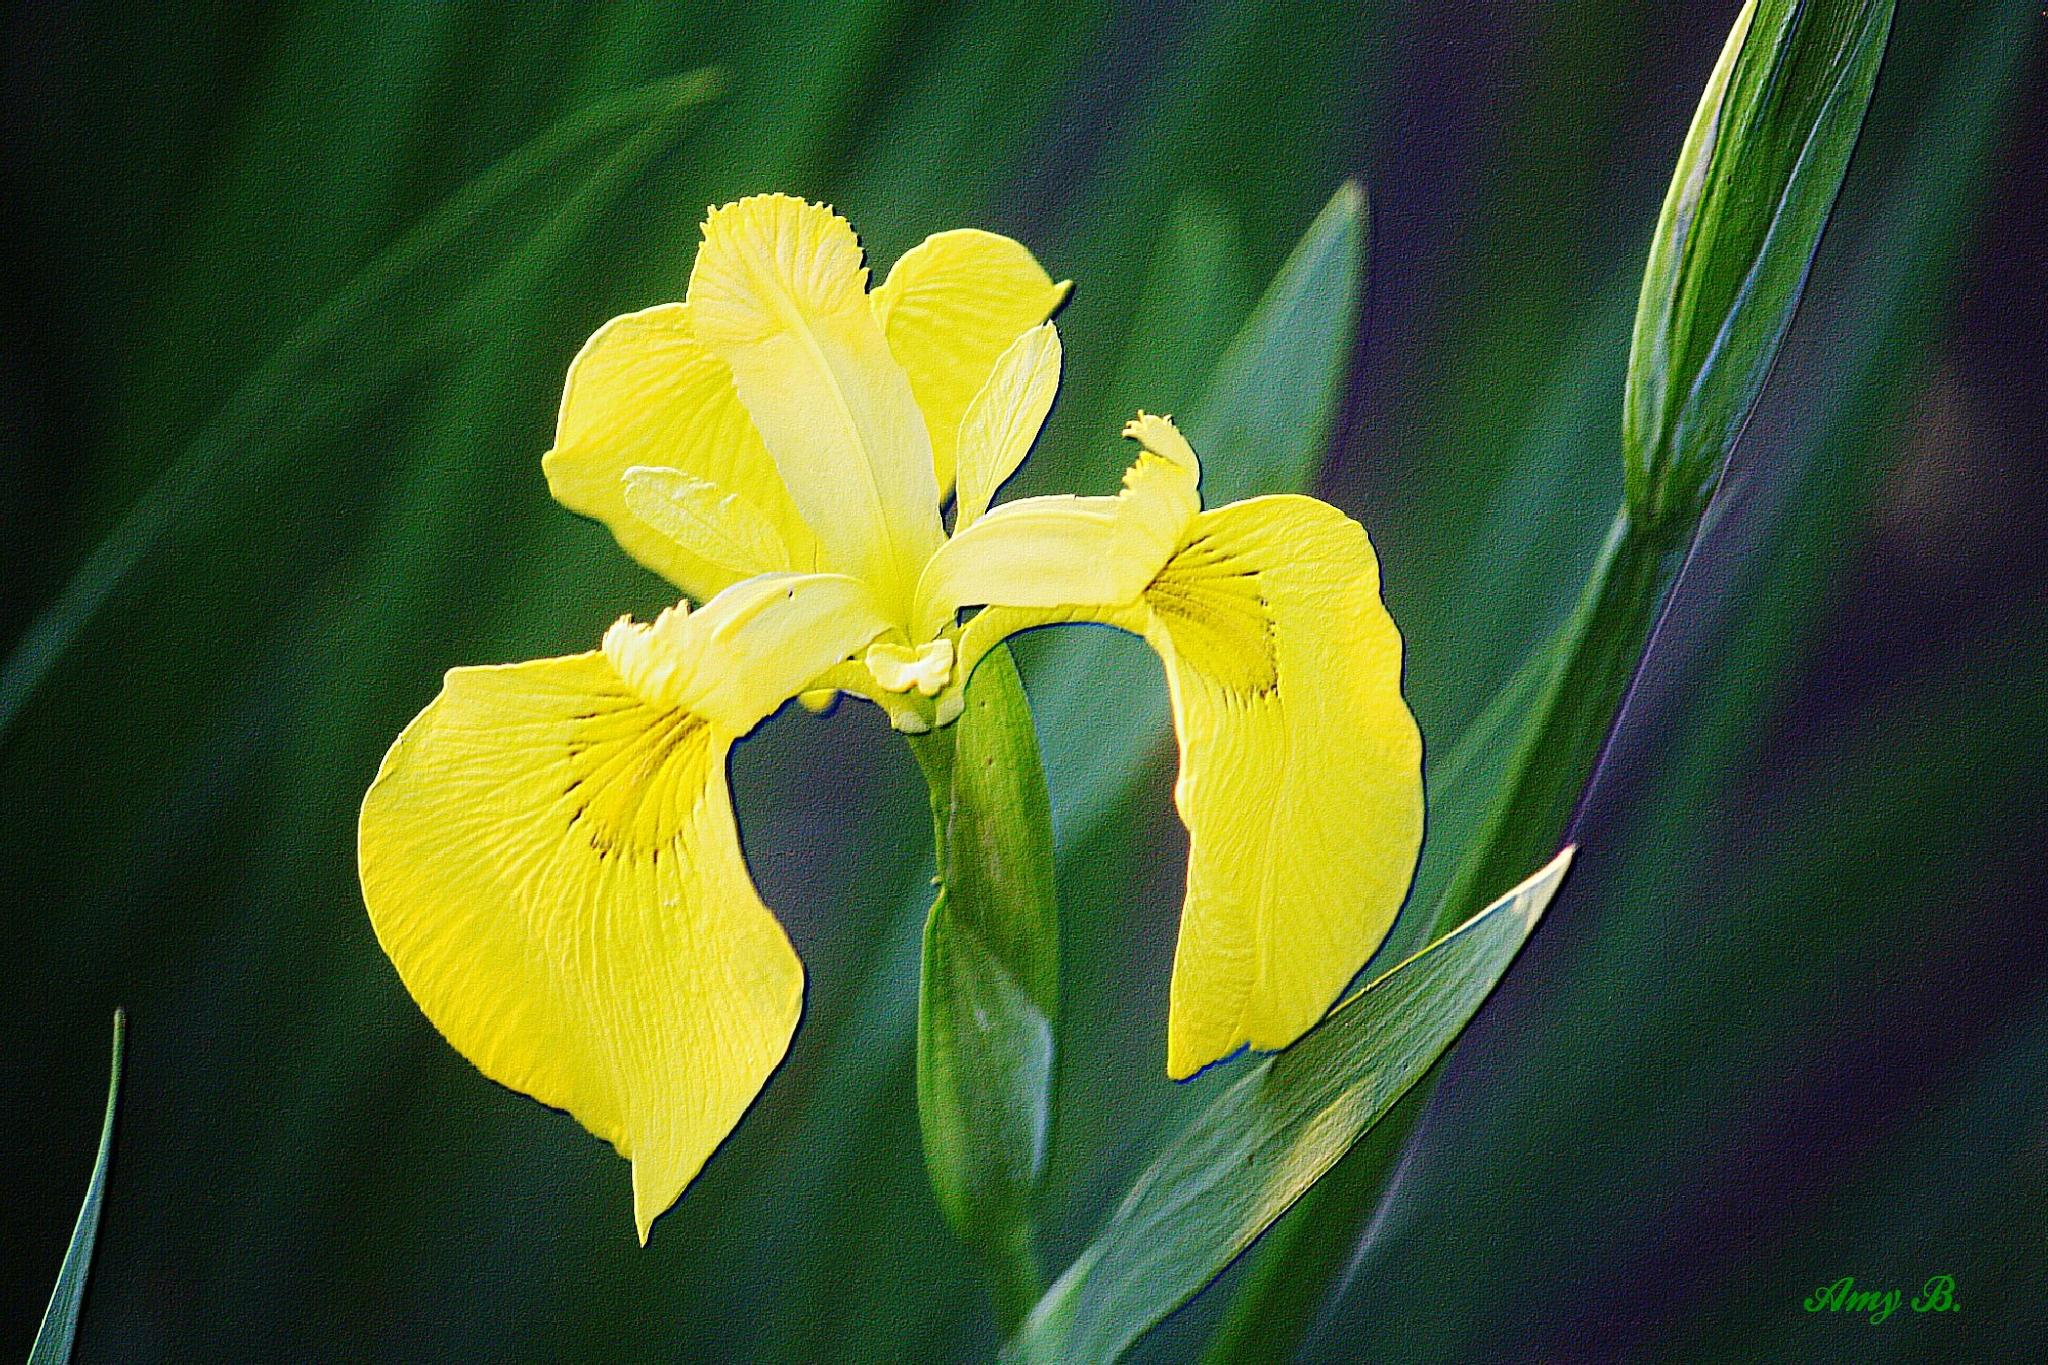 Yellow Iris embossed by amy.conger.9